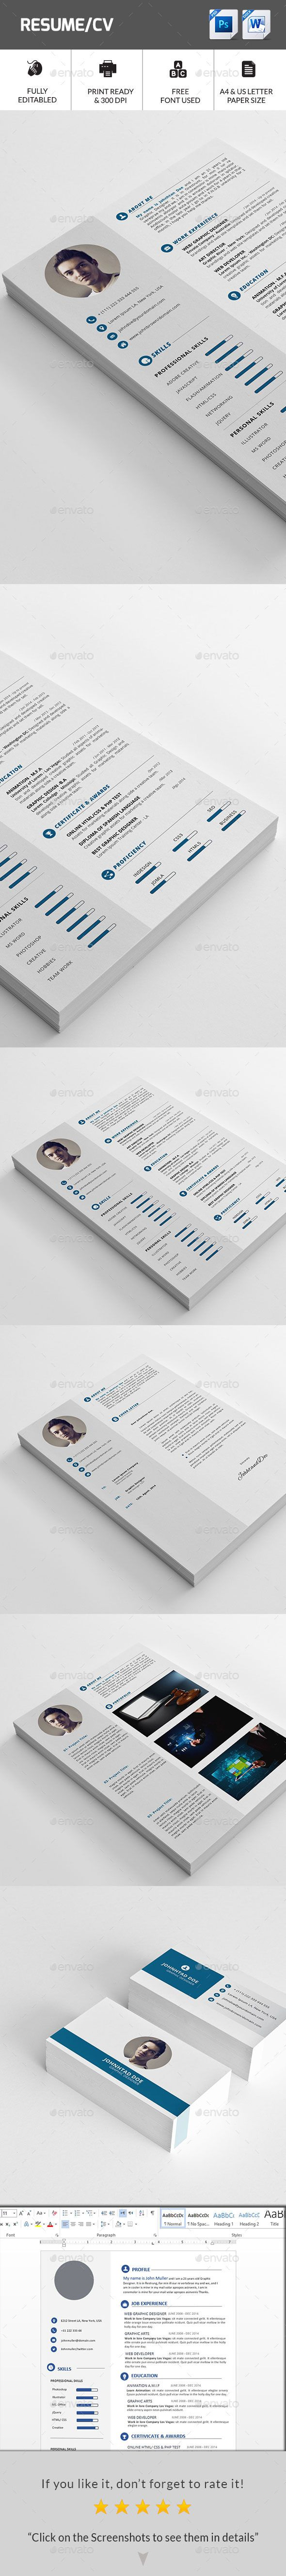 Resume cv photoshop psd profile swiss available here https cv resume template yelopaper Gallery